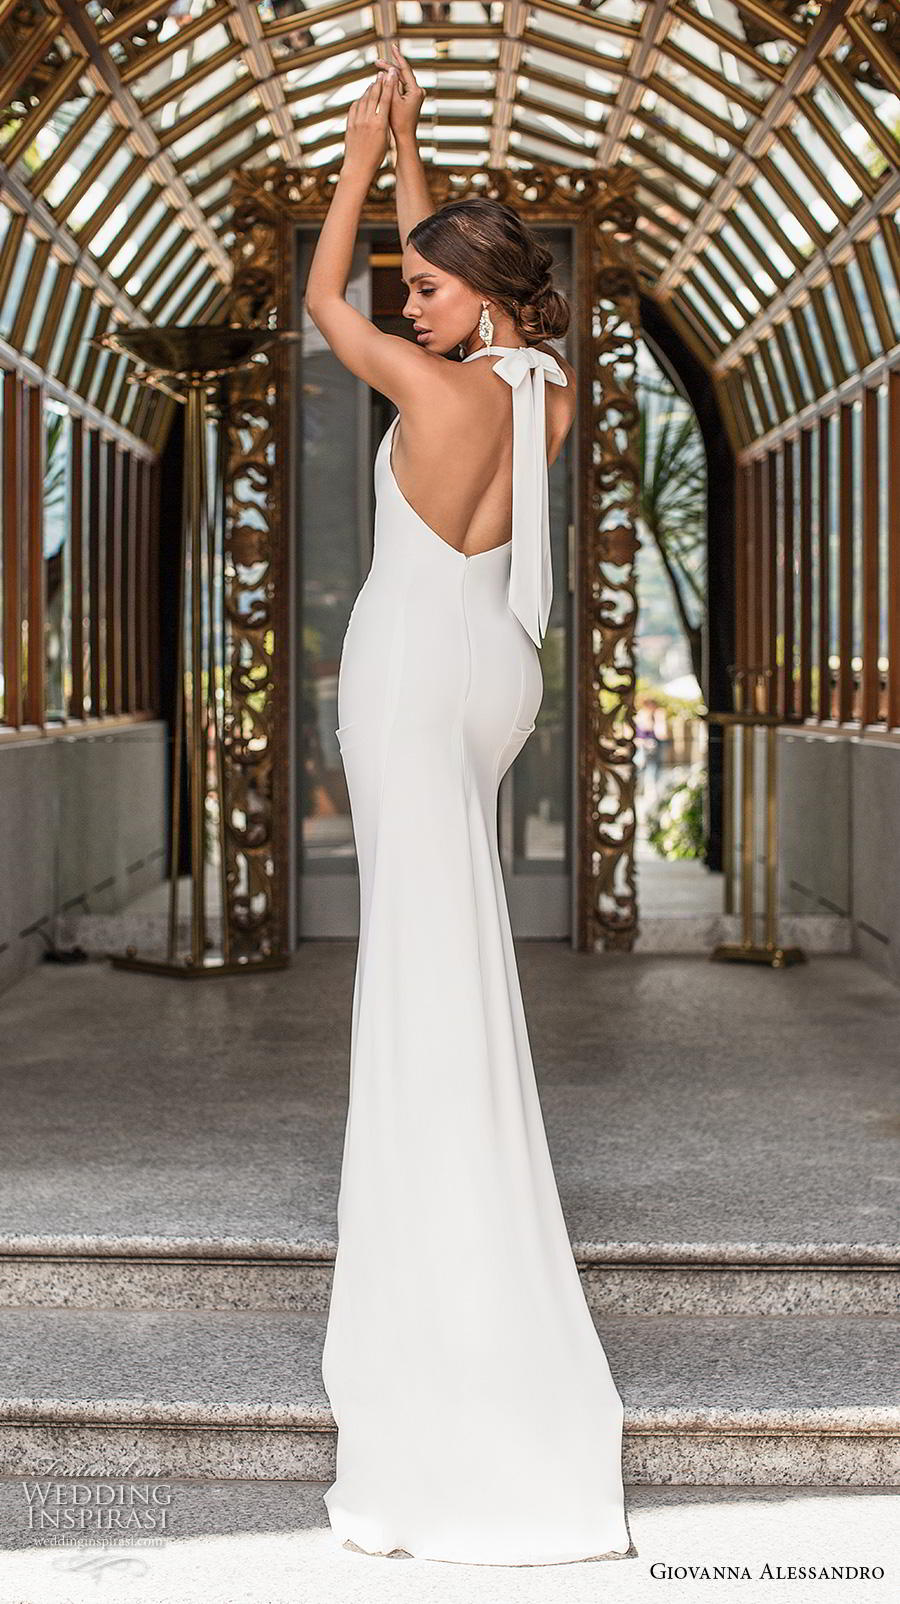 giovanna alessandro 2019 bridal sleeveless halter neck simple minimalist elegant sheath wedding dress backless chapel train (6) bv